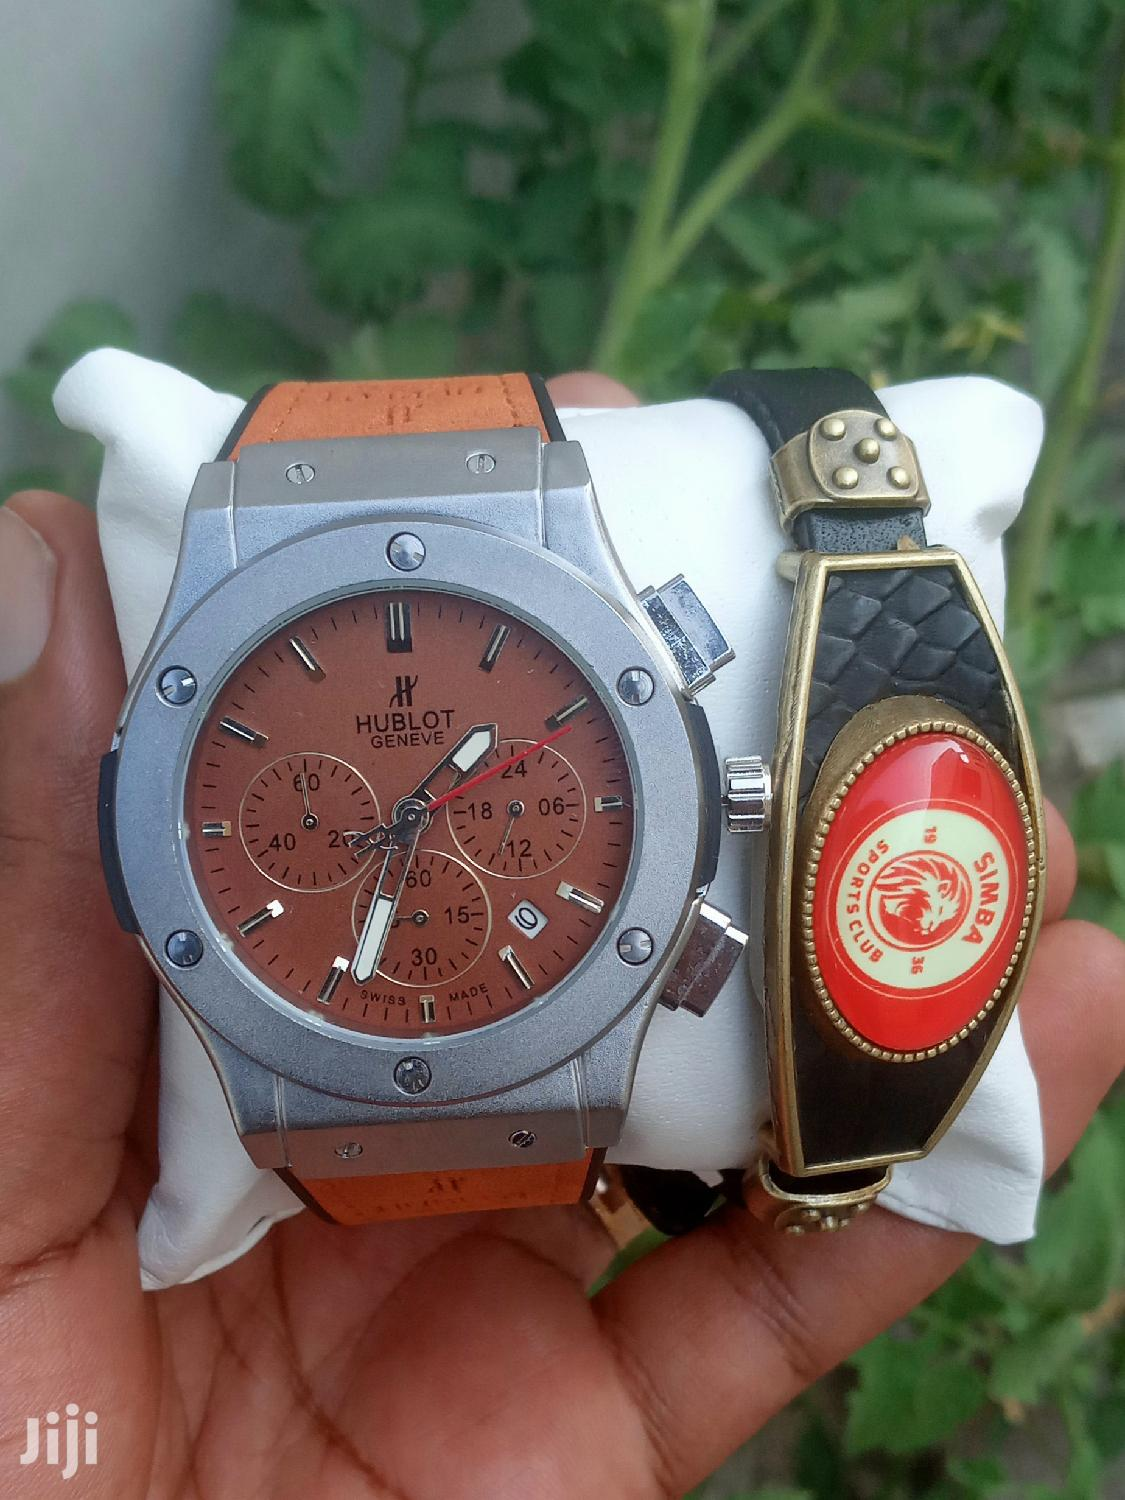 Hublot Watch Simba Bracelet